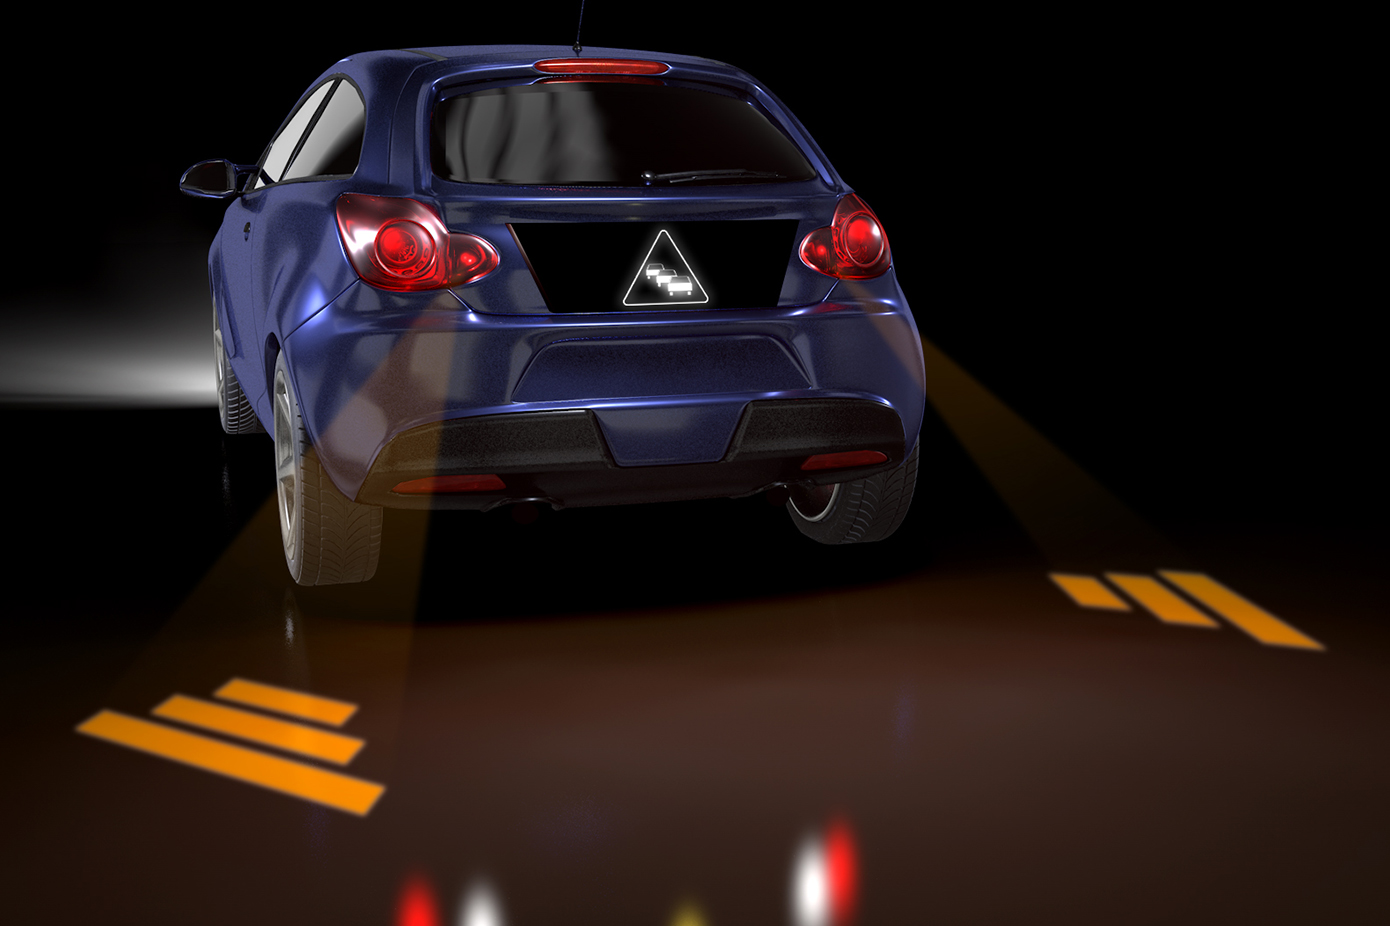 projected lighting in automotive